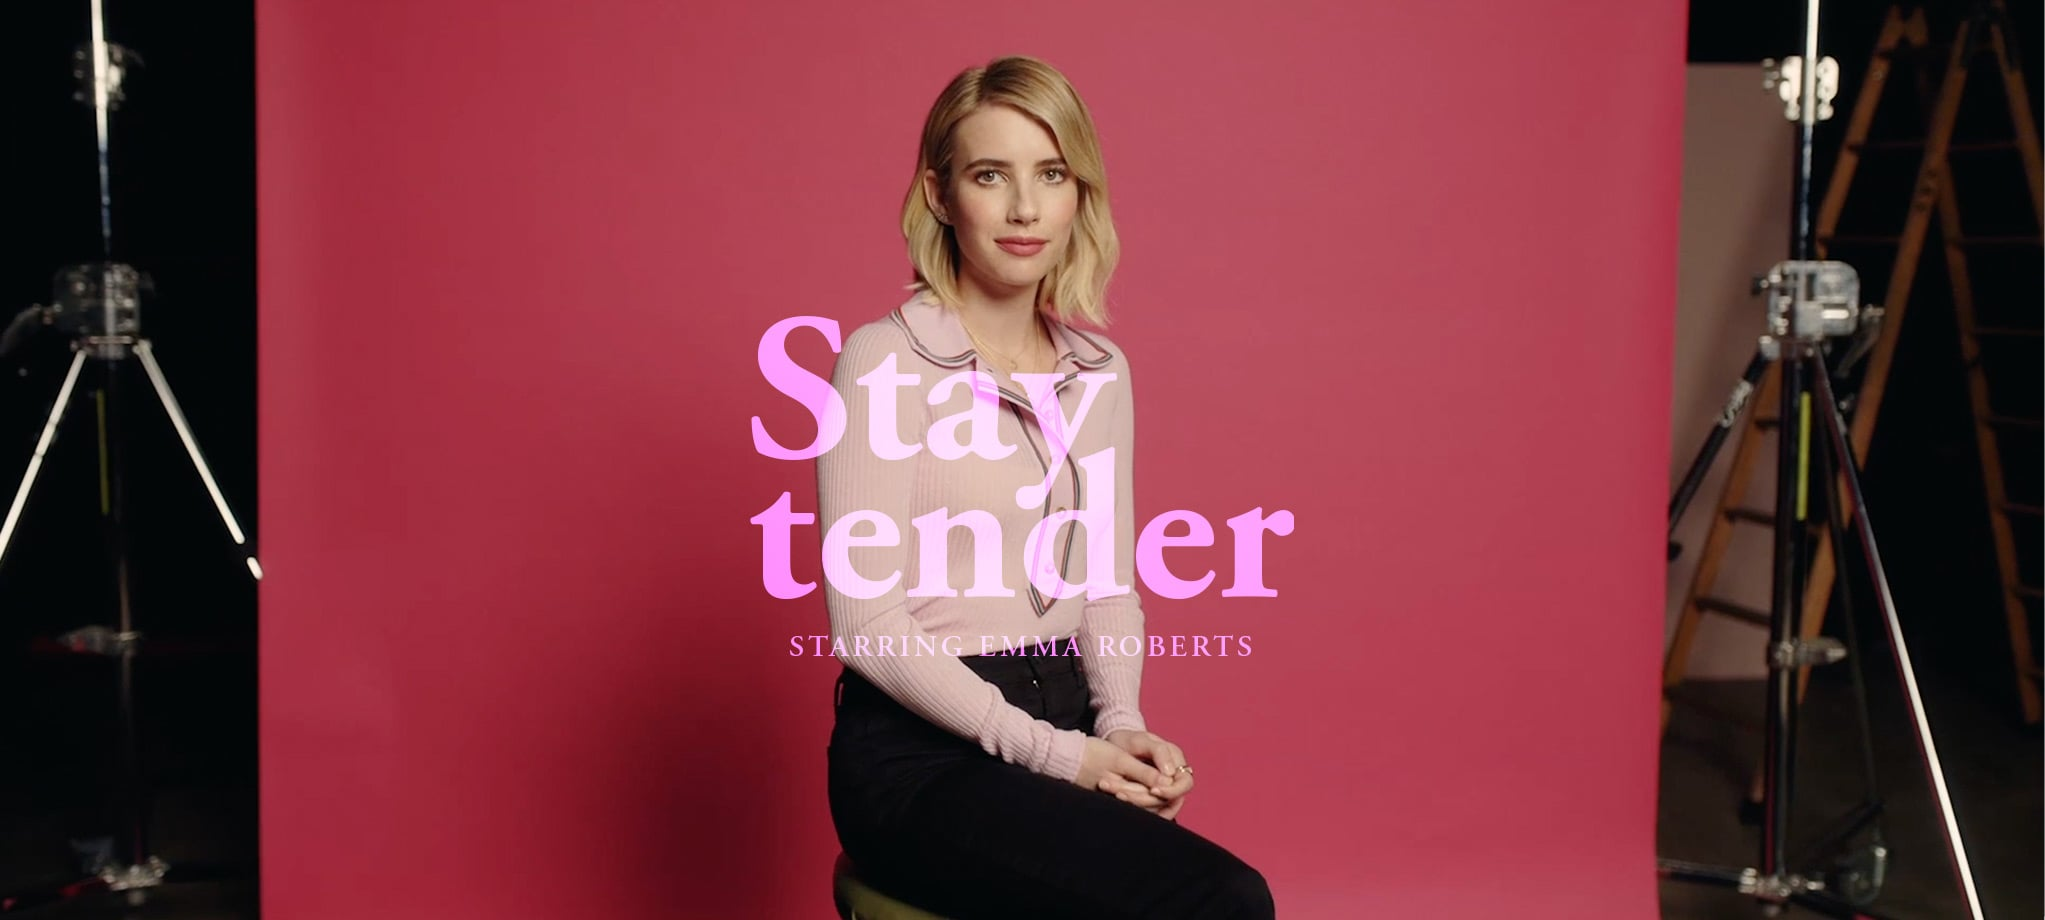 Master_teaser-stay-tender-desktop.jpg